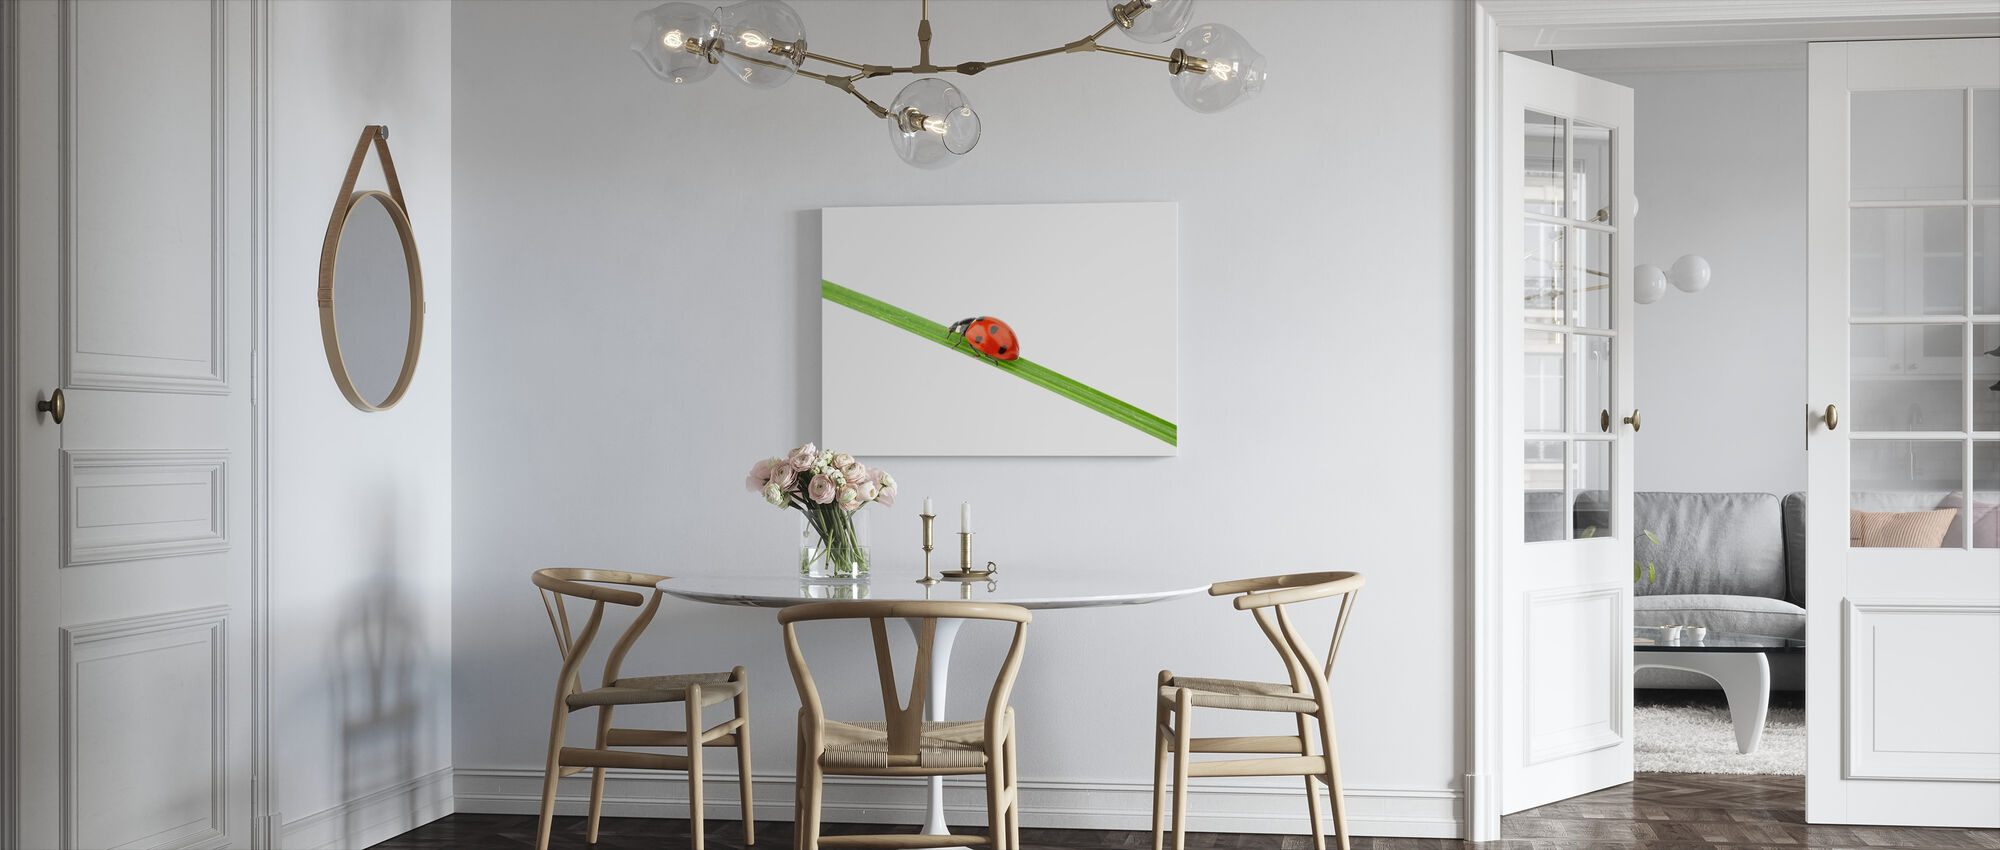 Ladybug on a Straw - Canvas print - Kitchen